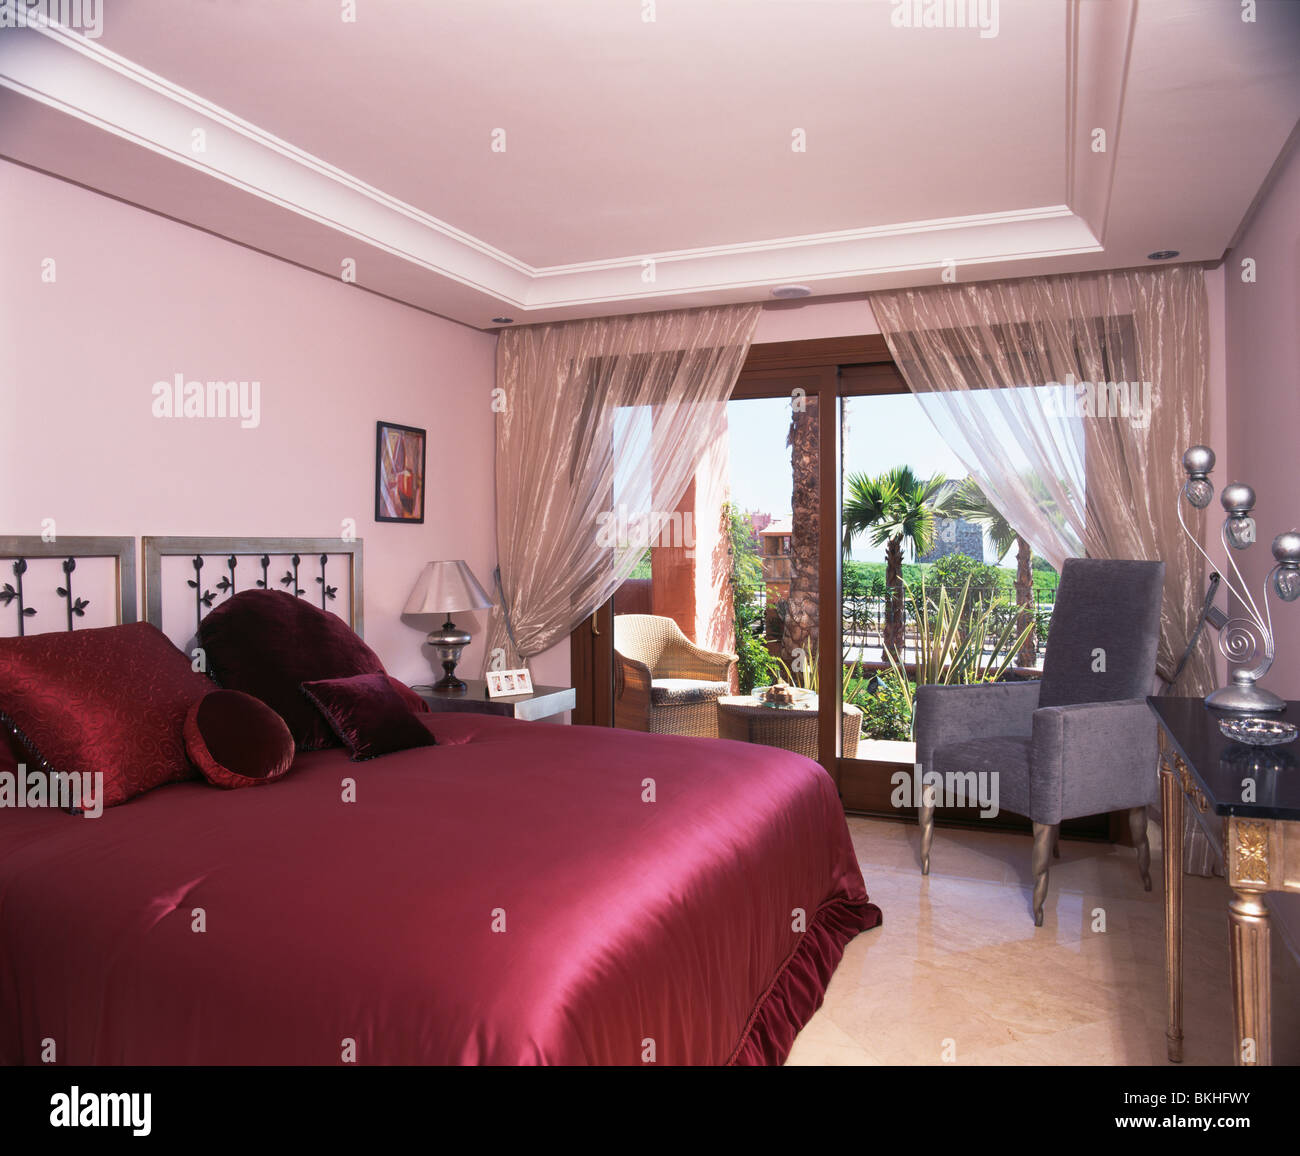 Red Satin Bedcover On Bed In Modern Bedroom With Metallic Voile Curtains  On Patio Doors To Balcony